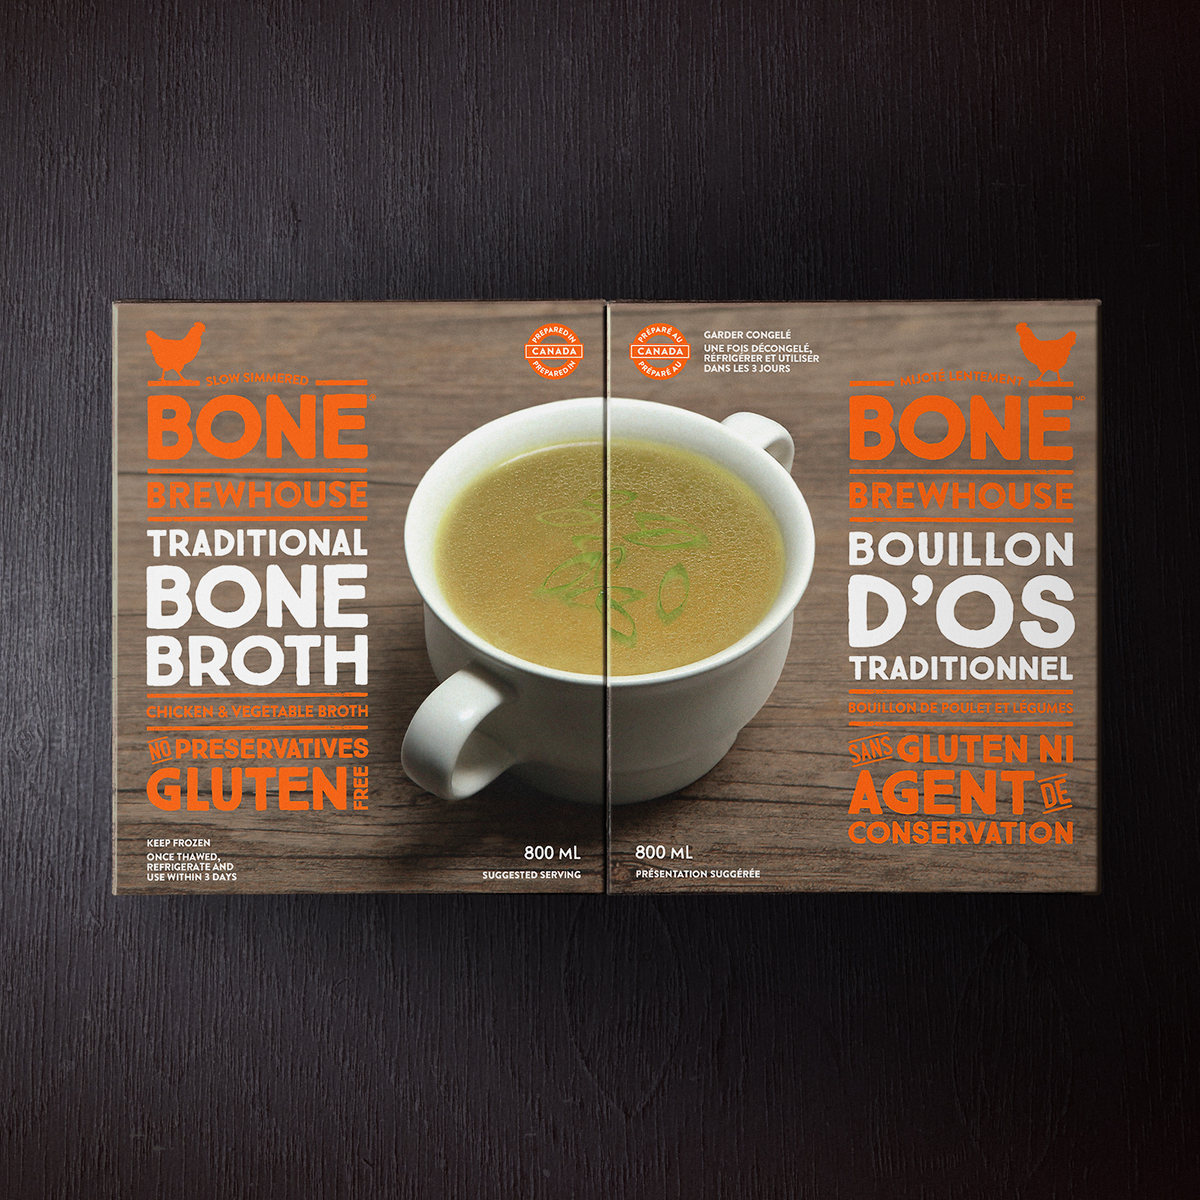 Two-pack of Bone Brewhouse slow-cooked bone broth.